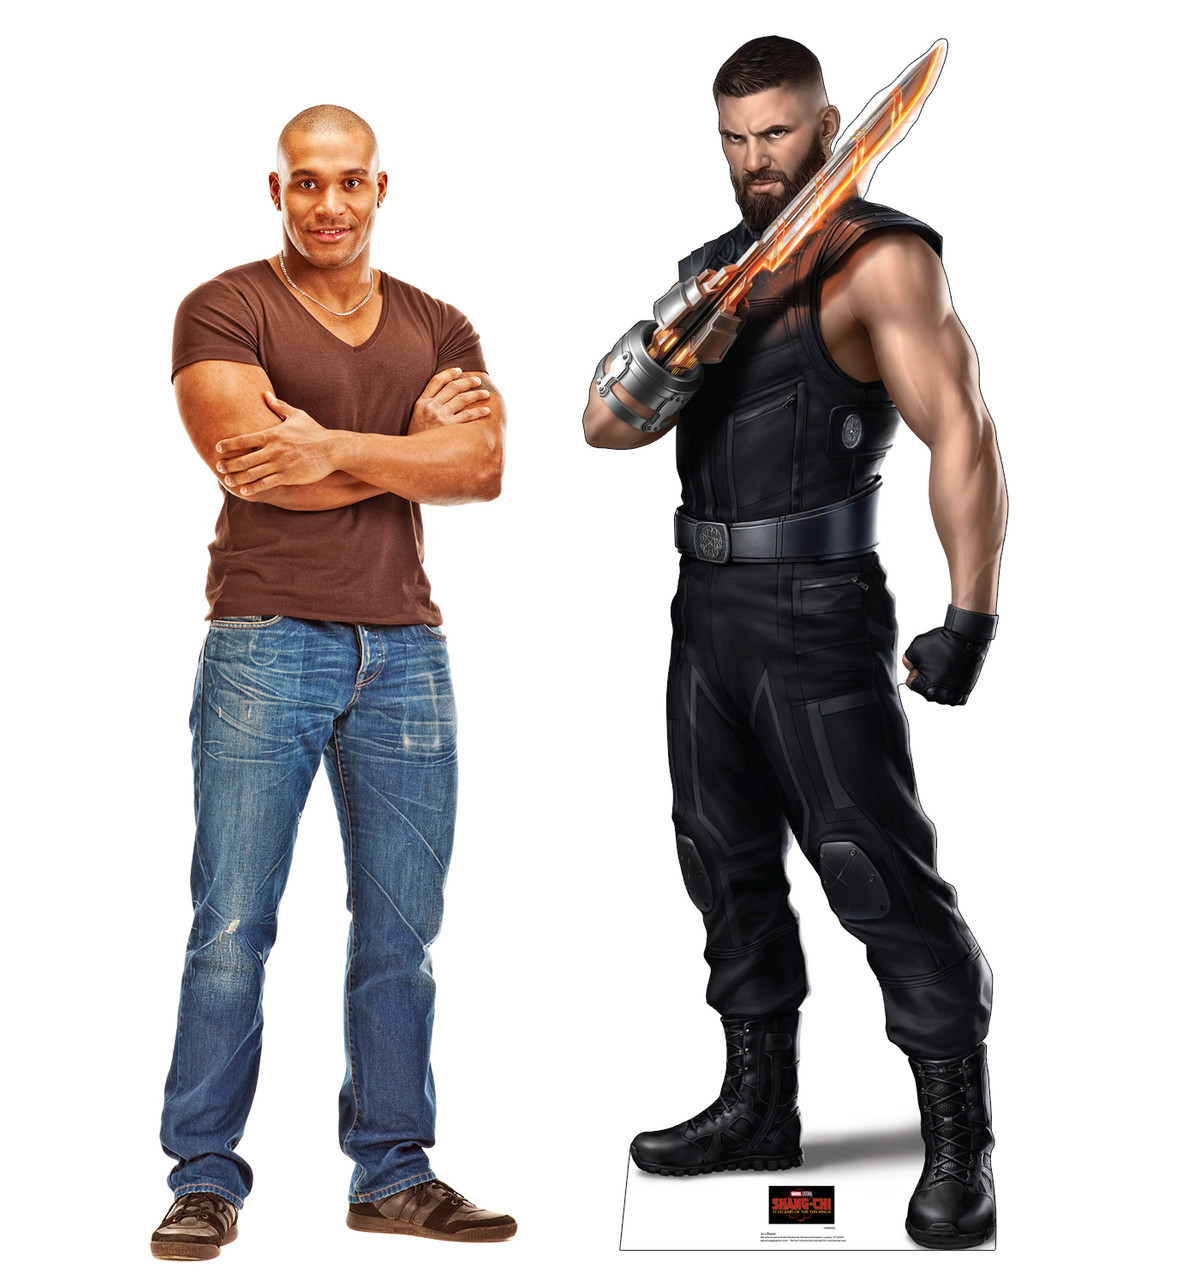 Life-size cardboard standee of Razor from Shang-Chi and the Legends of the Ten Rings from Marvel Studios with model.